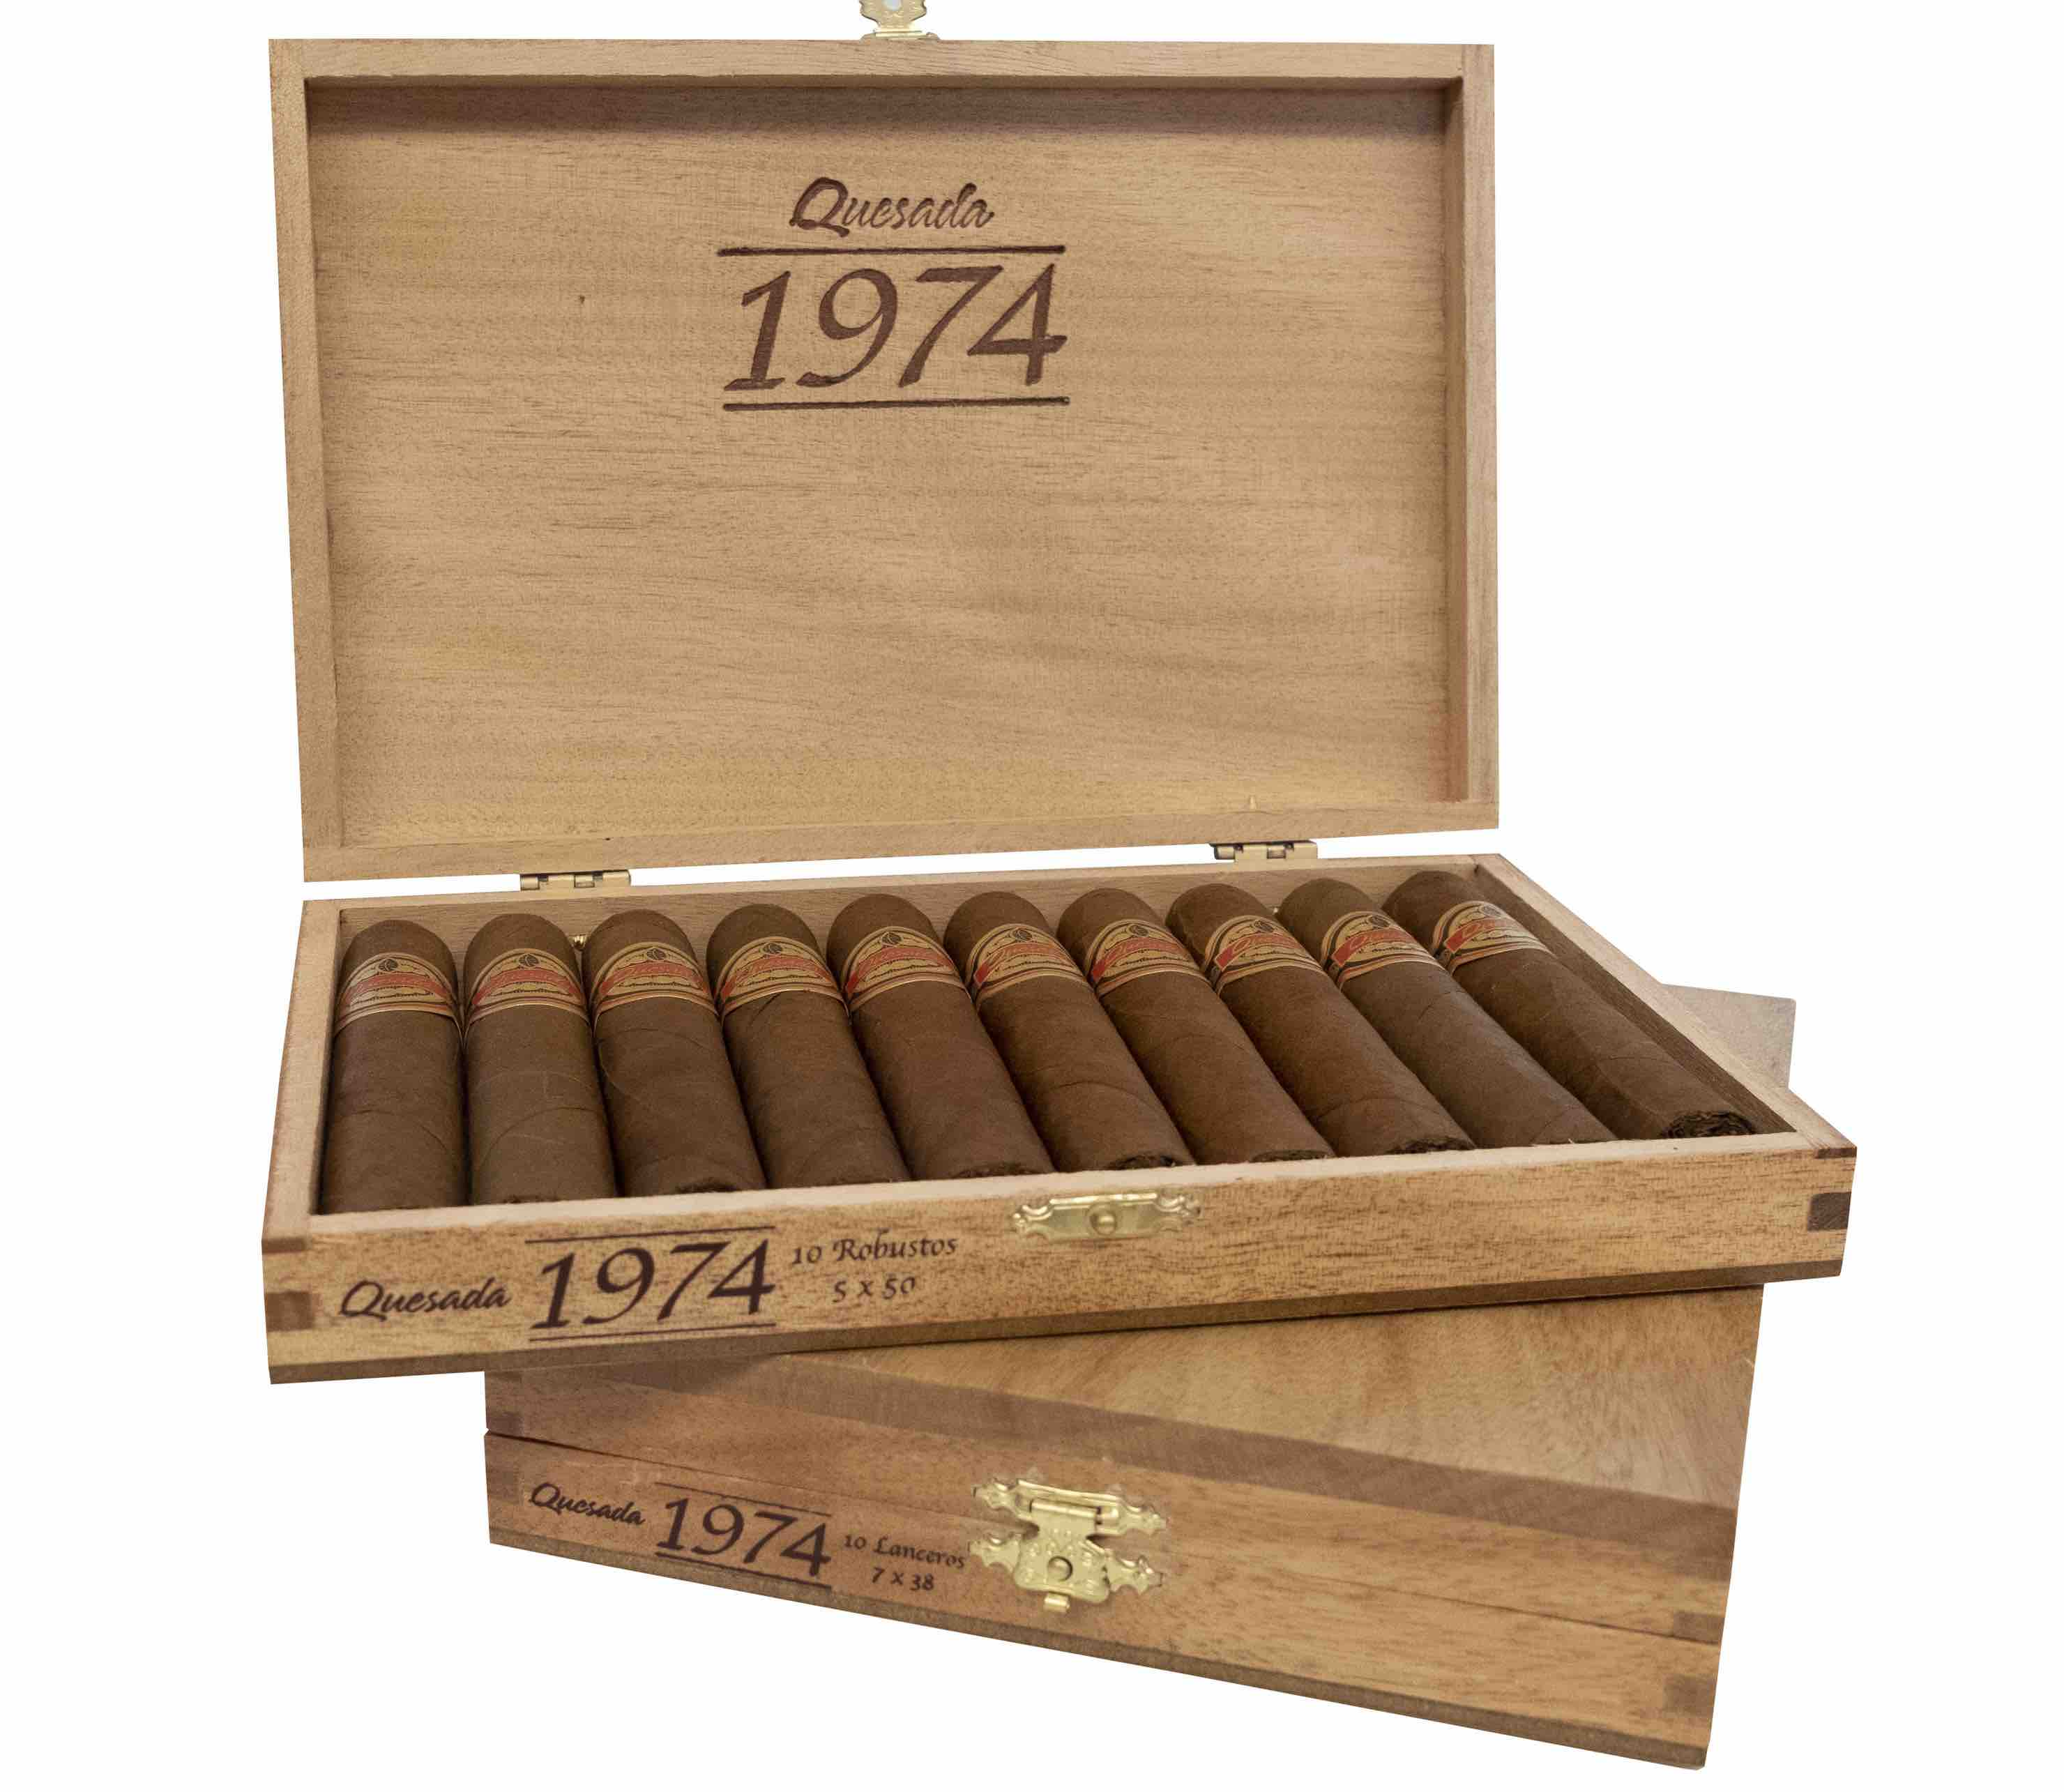 Cigar News: Quesada 1974 to Have U.S. Launch at the 2019 IPCPR Trade Show